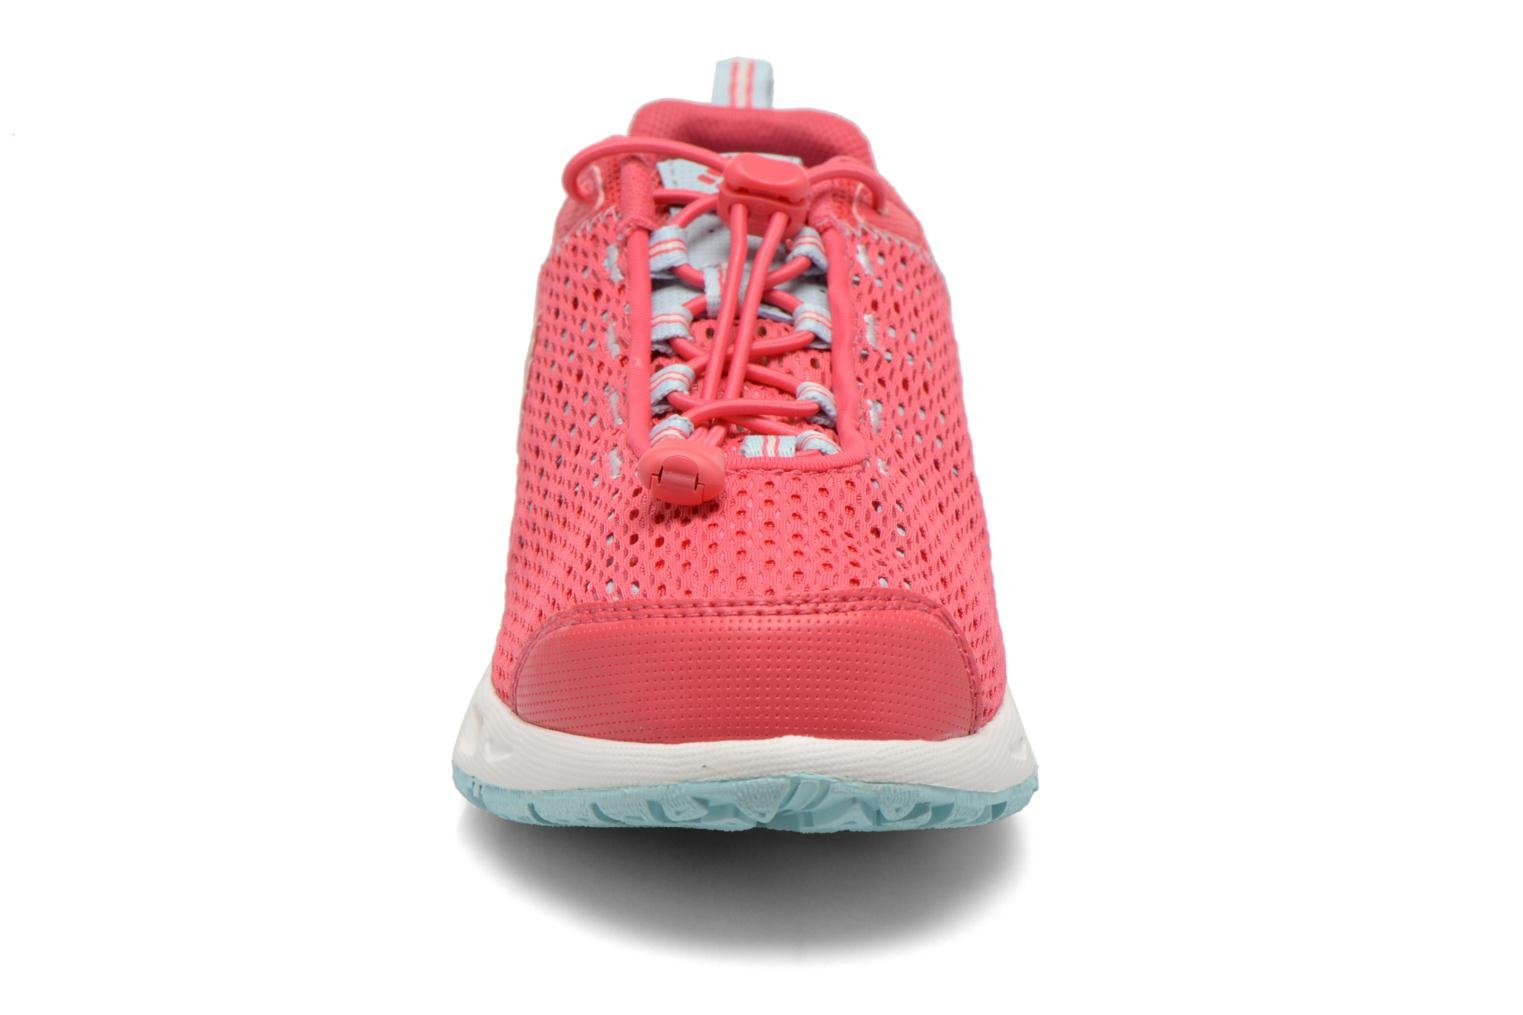 Chaussures de sport Columbia Youth Drainmaker III Rose vue portées chaussures